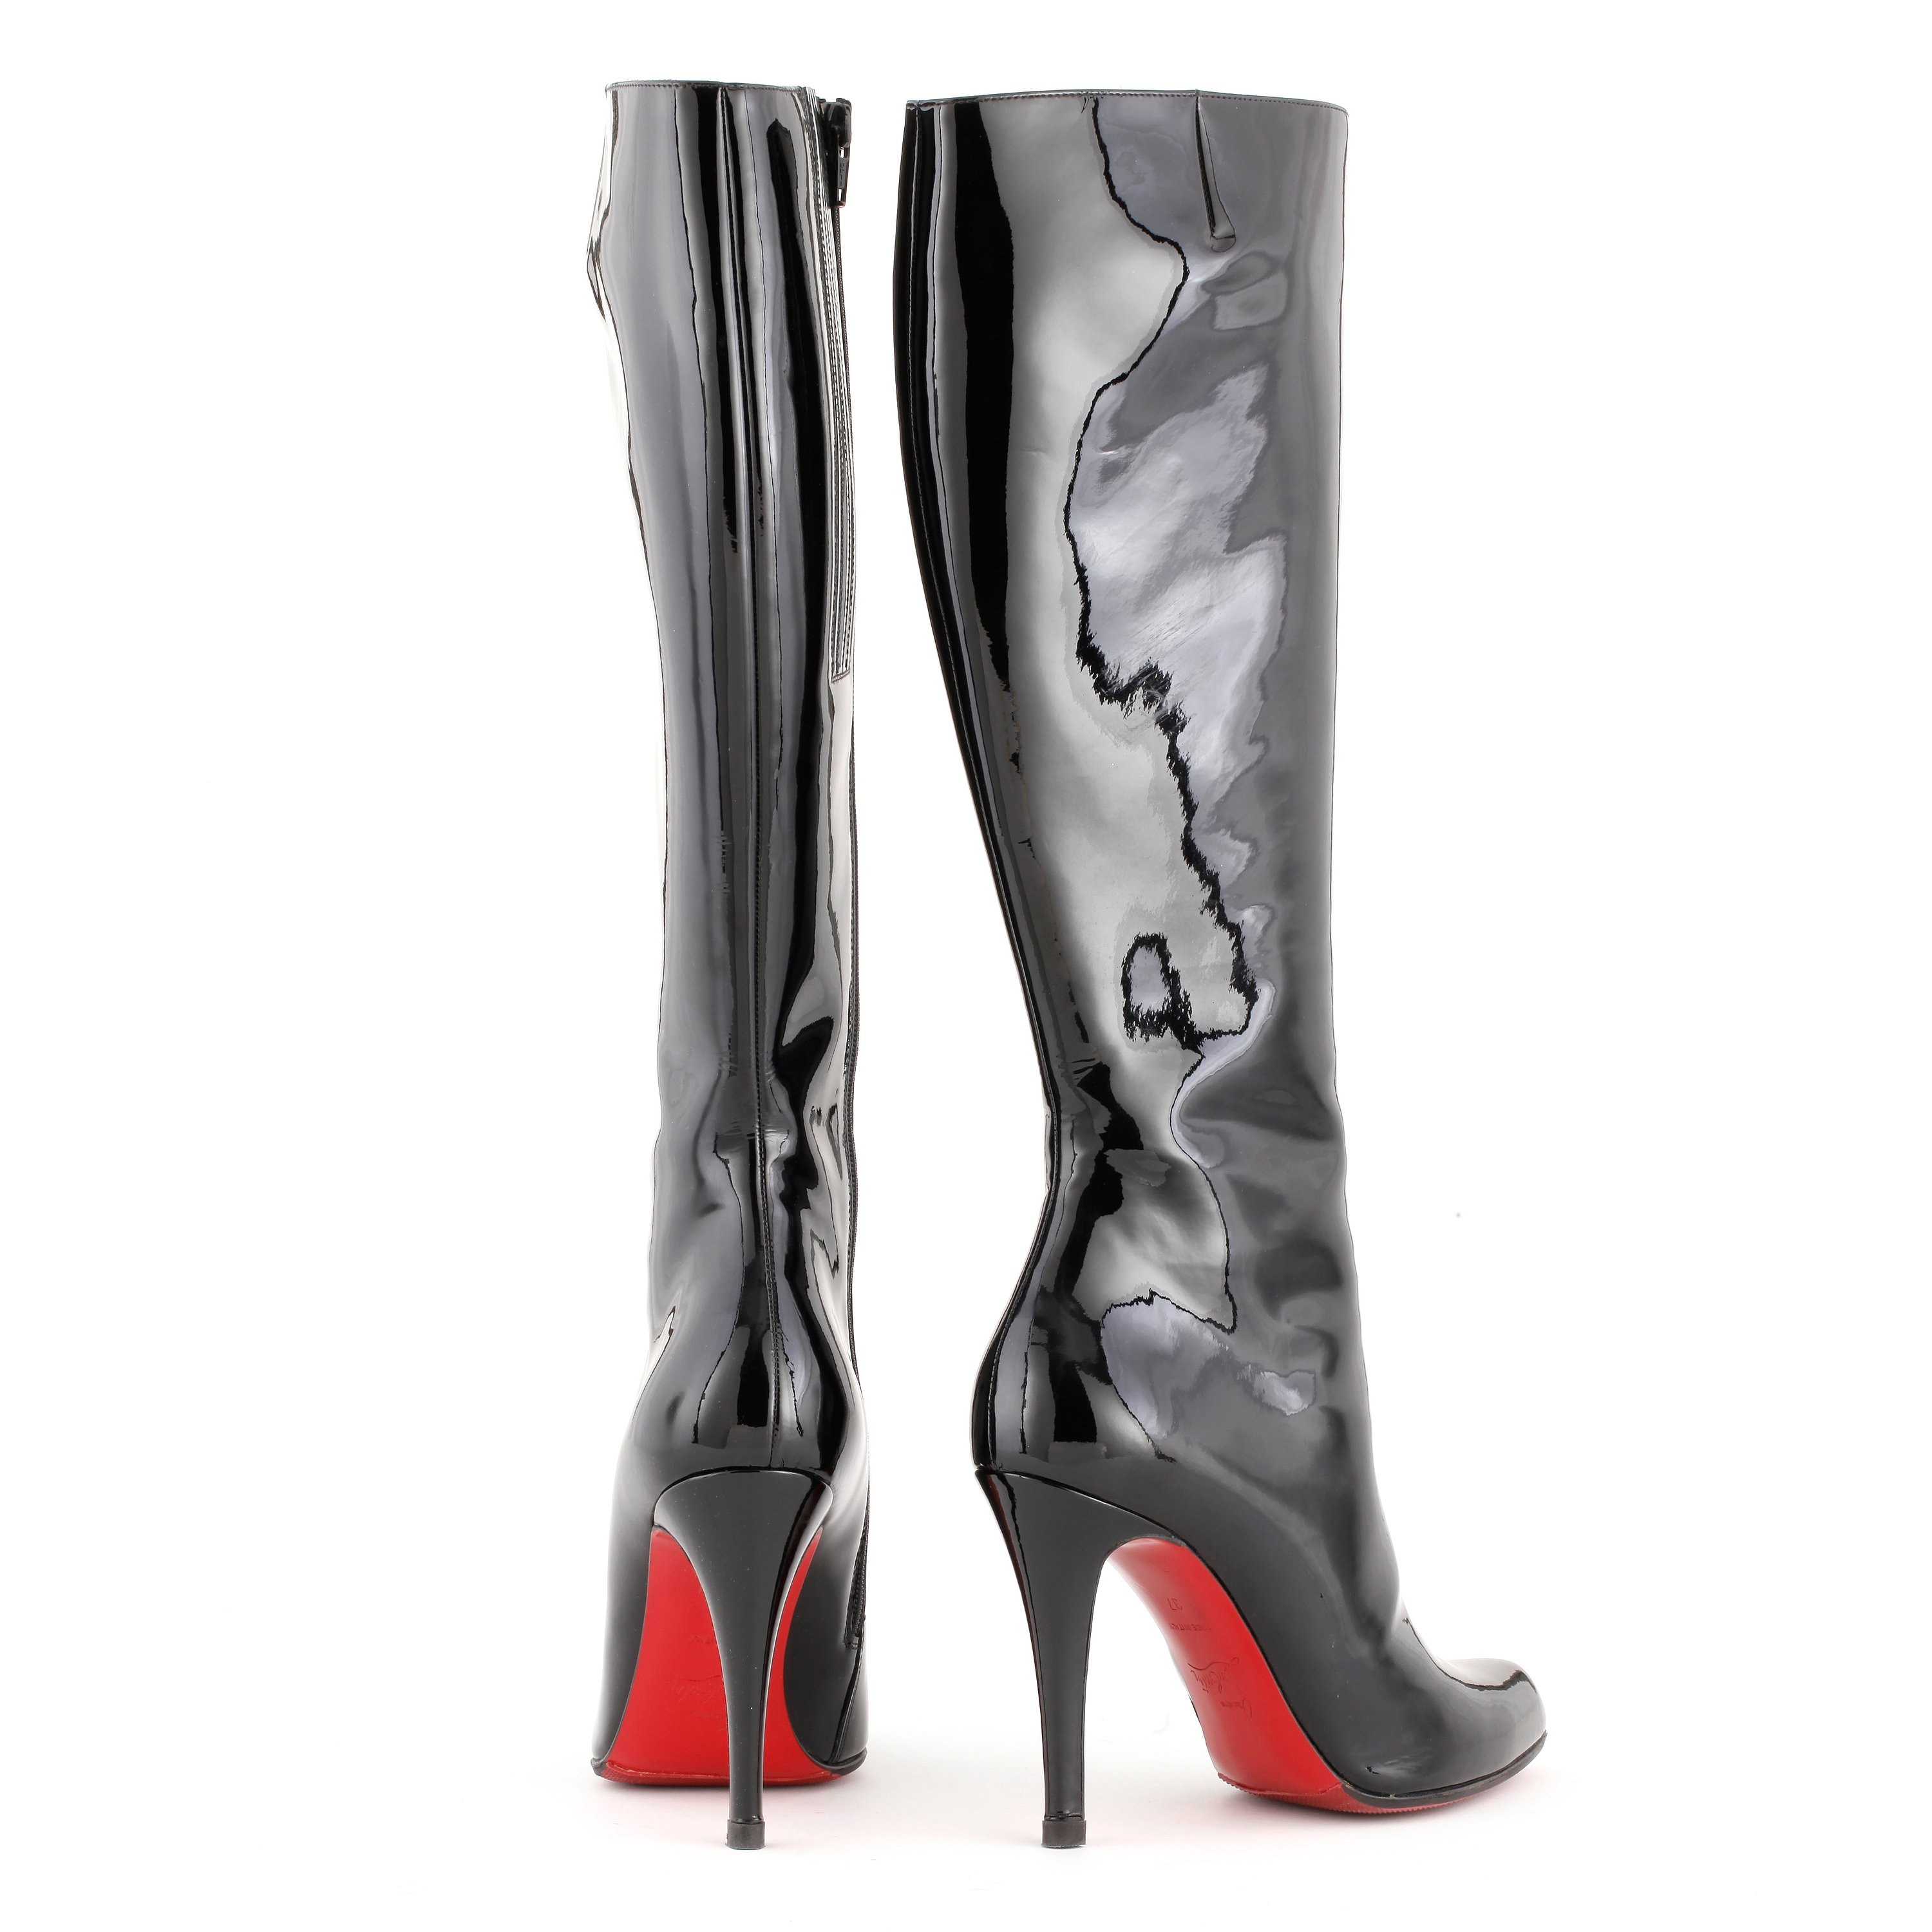 2af0012a23b CHRISTIAN LOUBOUTIN, a pair of black patent leather high heeled ...